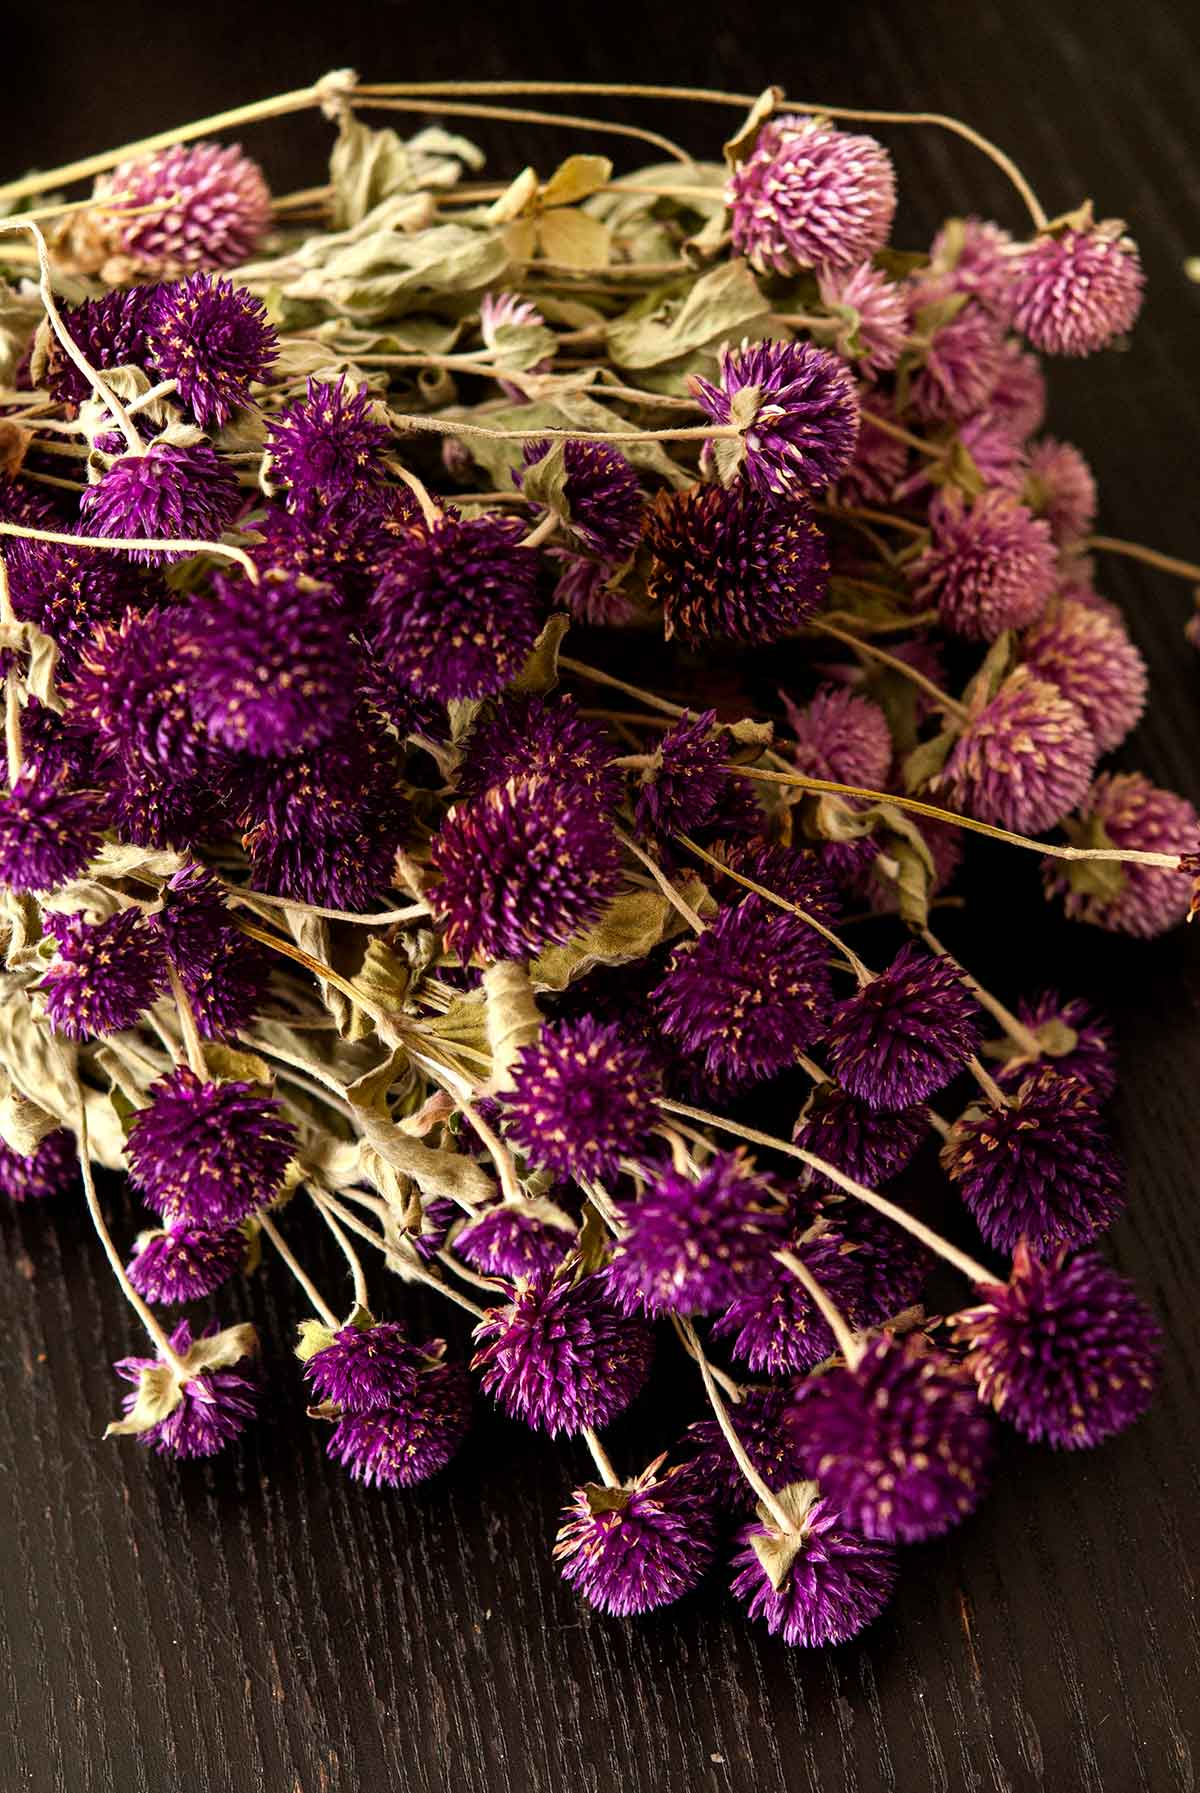 Gomphrena flowers on a table.